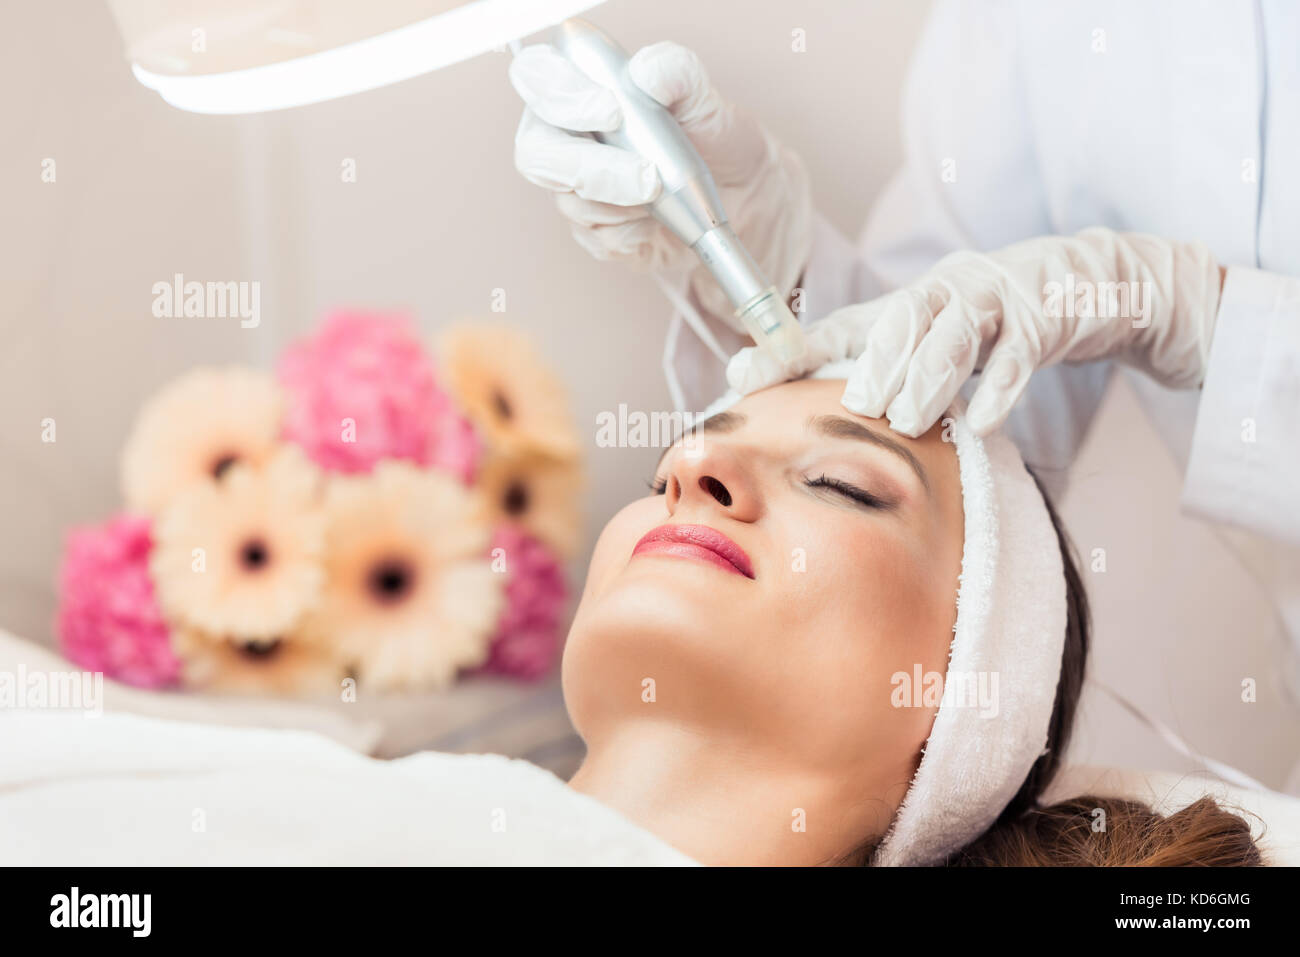 Close-up of the face of a woman relaxing during non-surgical fac Stock Photo